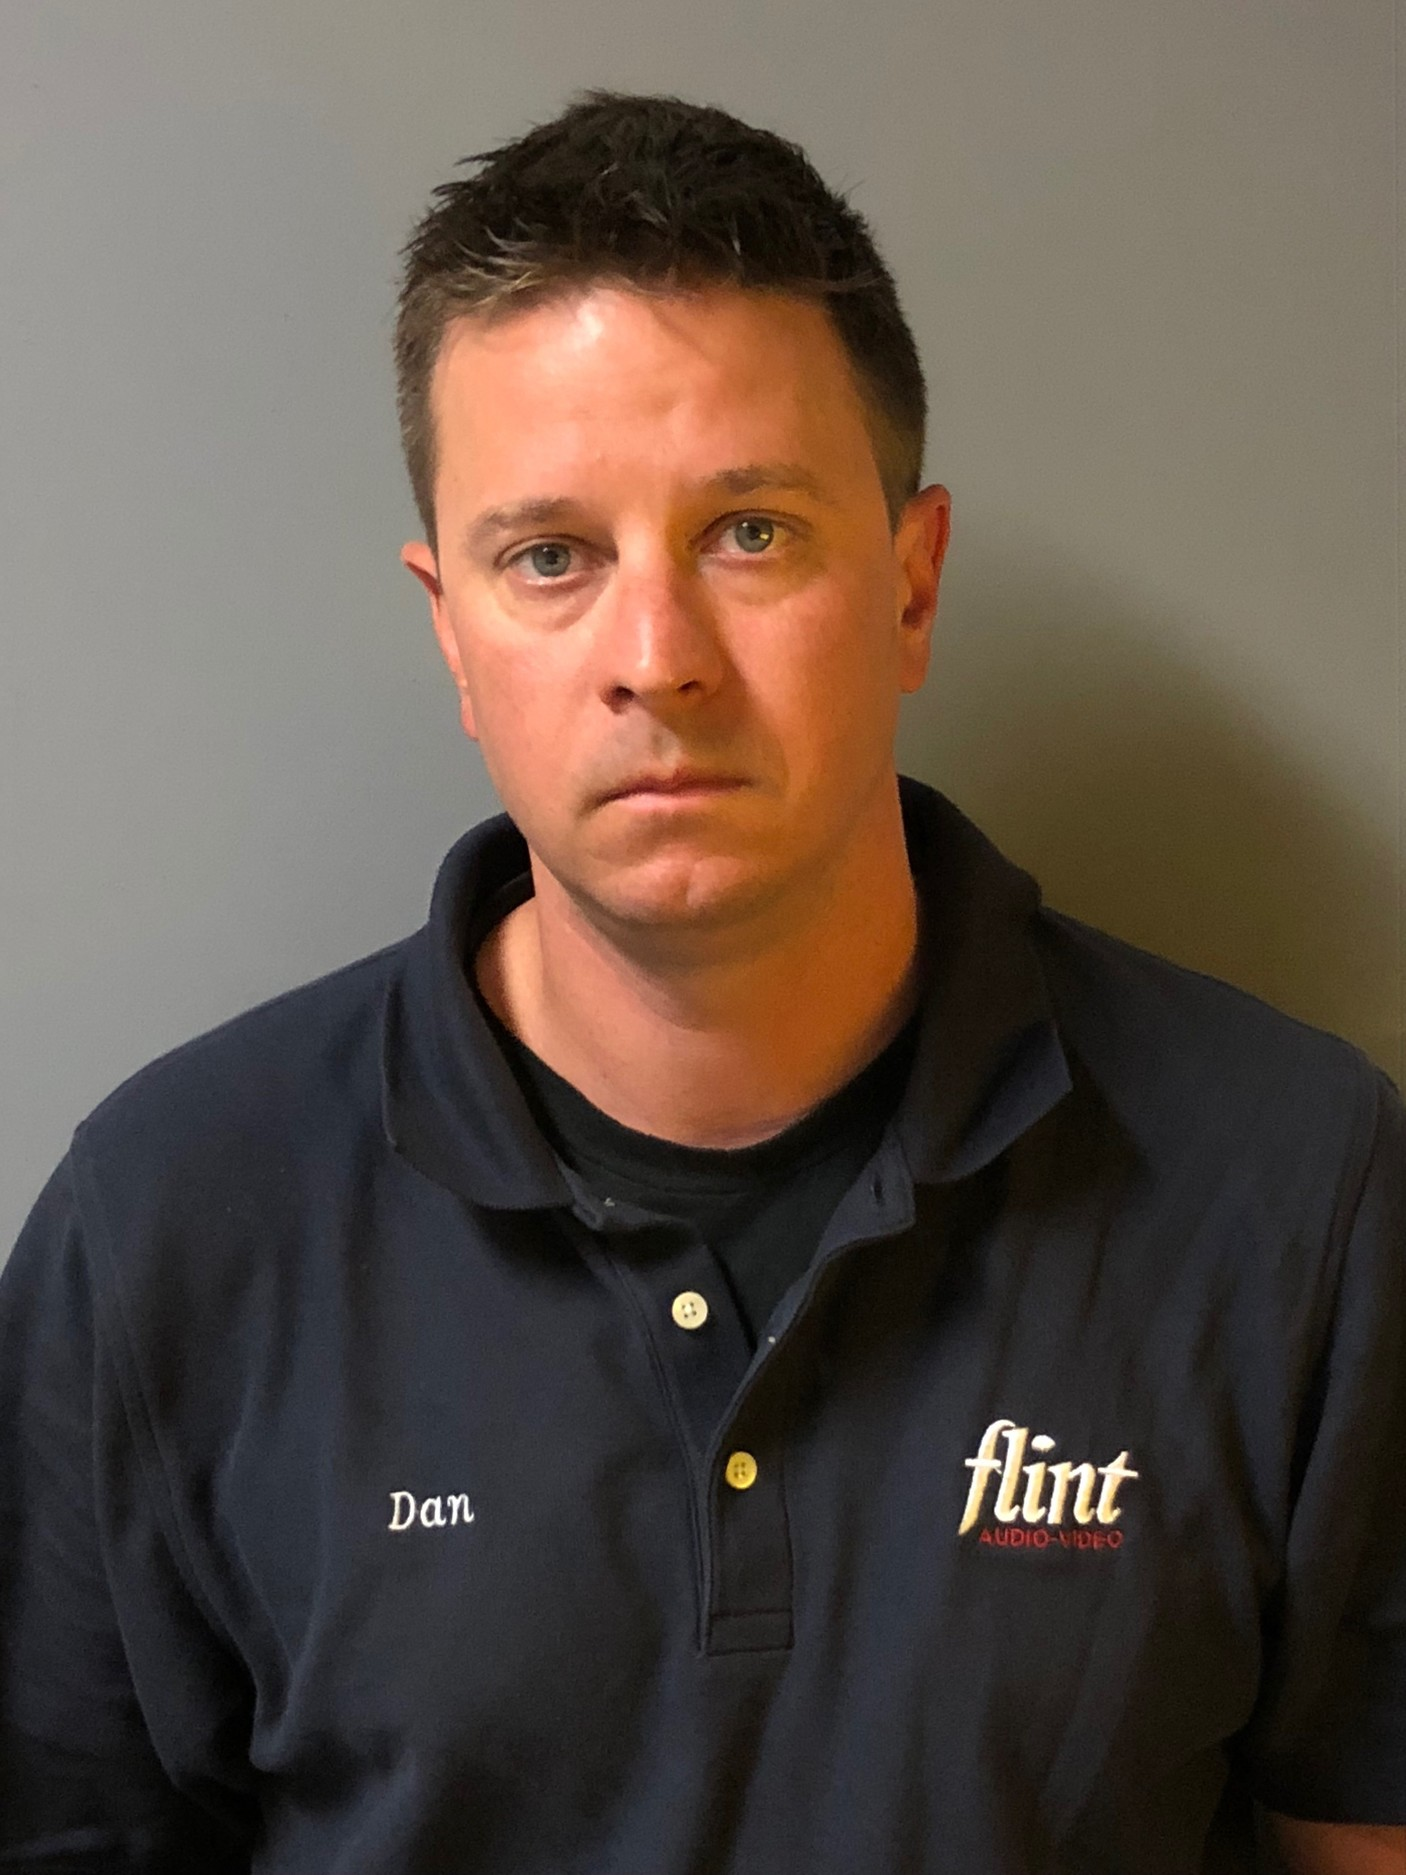 4th suspect arrested in stolen nude photos case at Flint